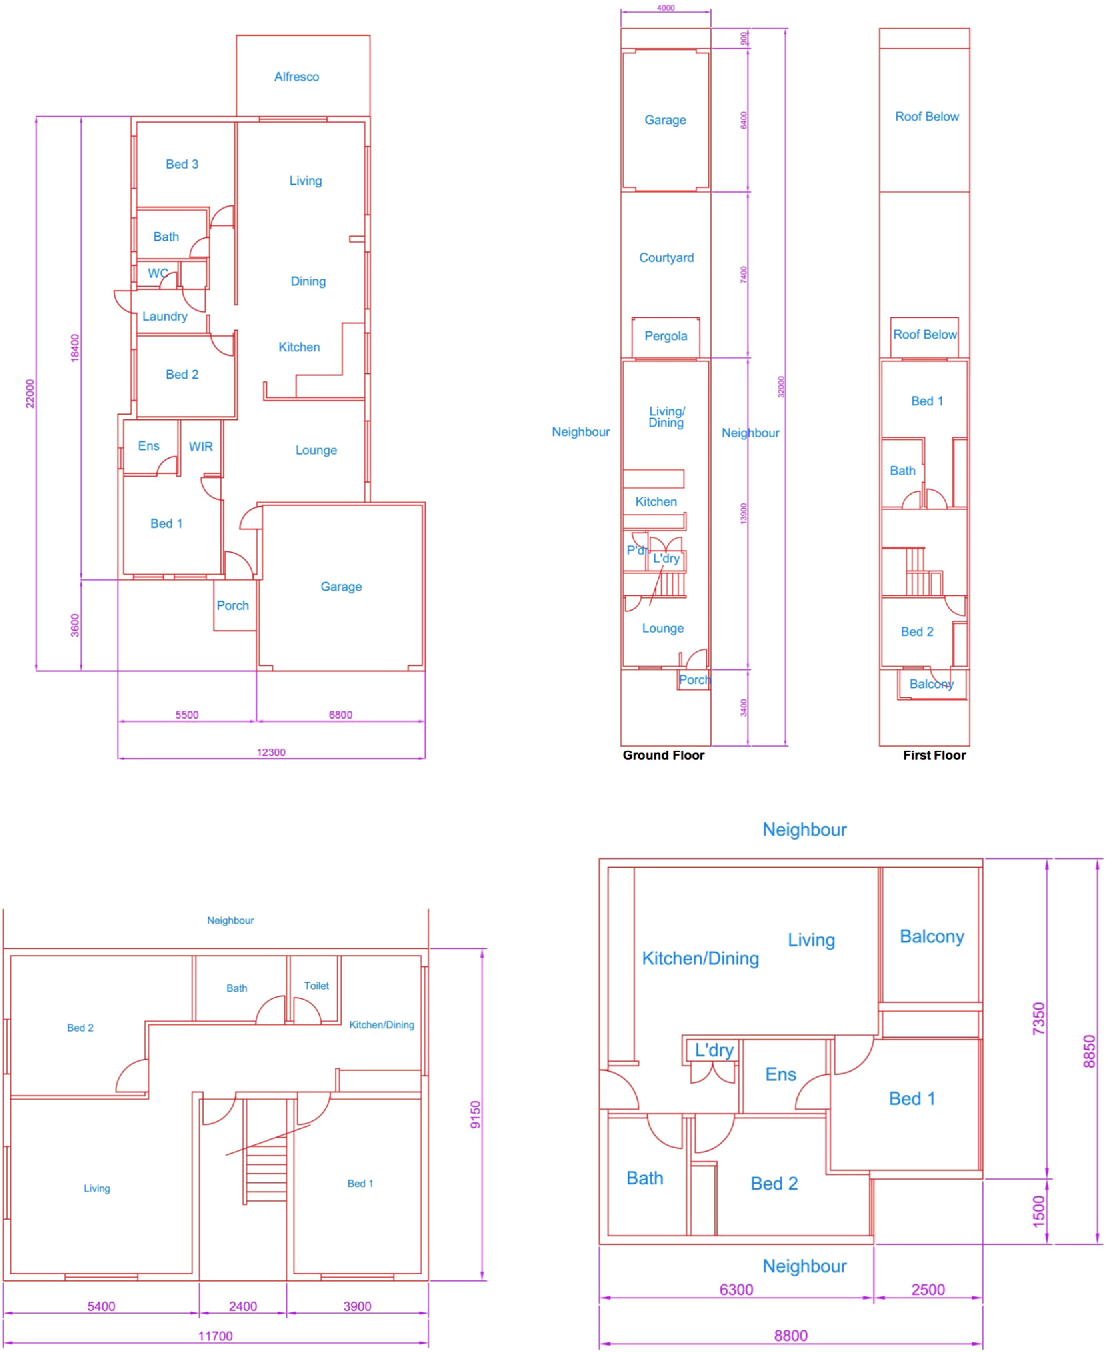 Figure 2 From Modelling Housing Typologies For Urban Redevelopment